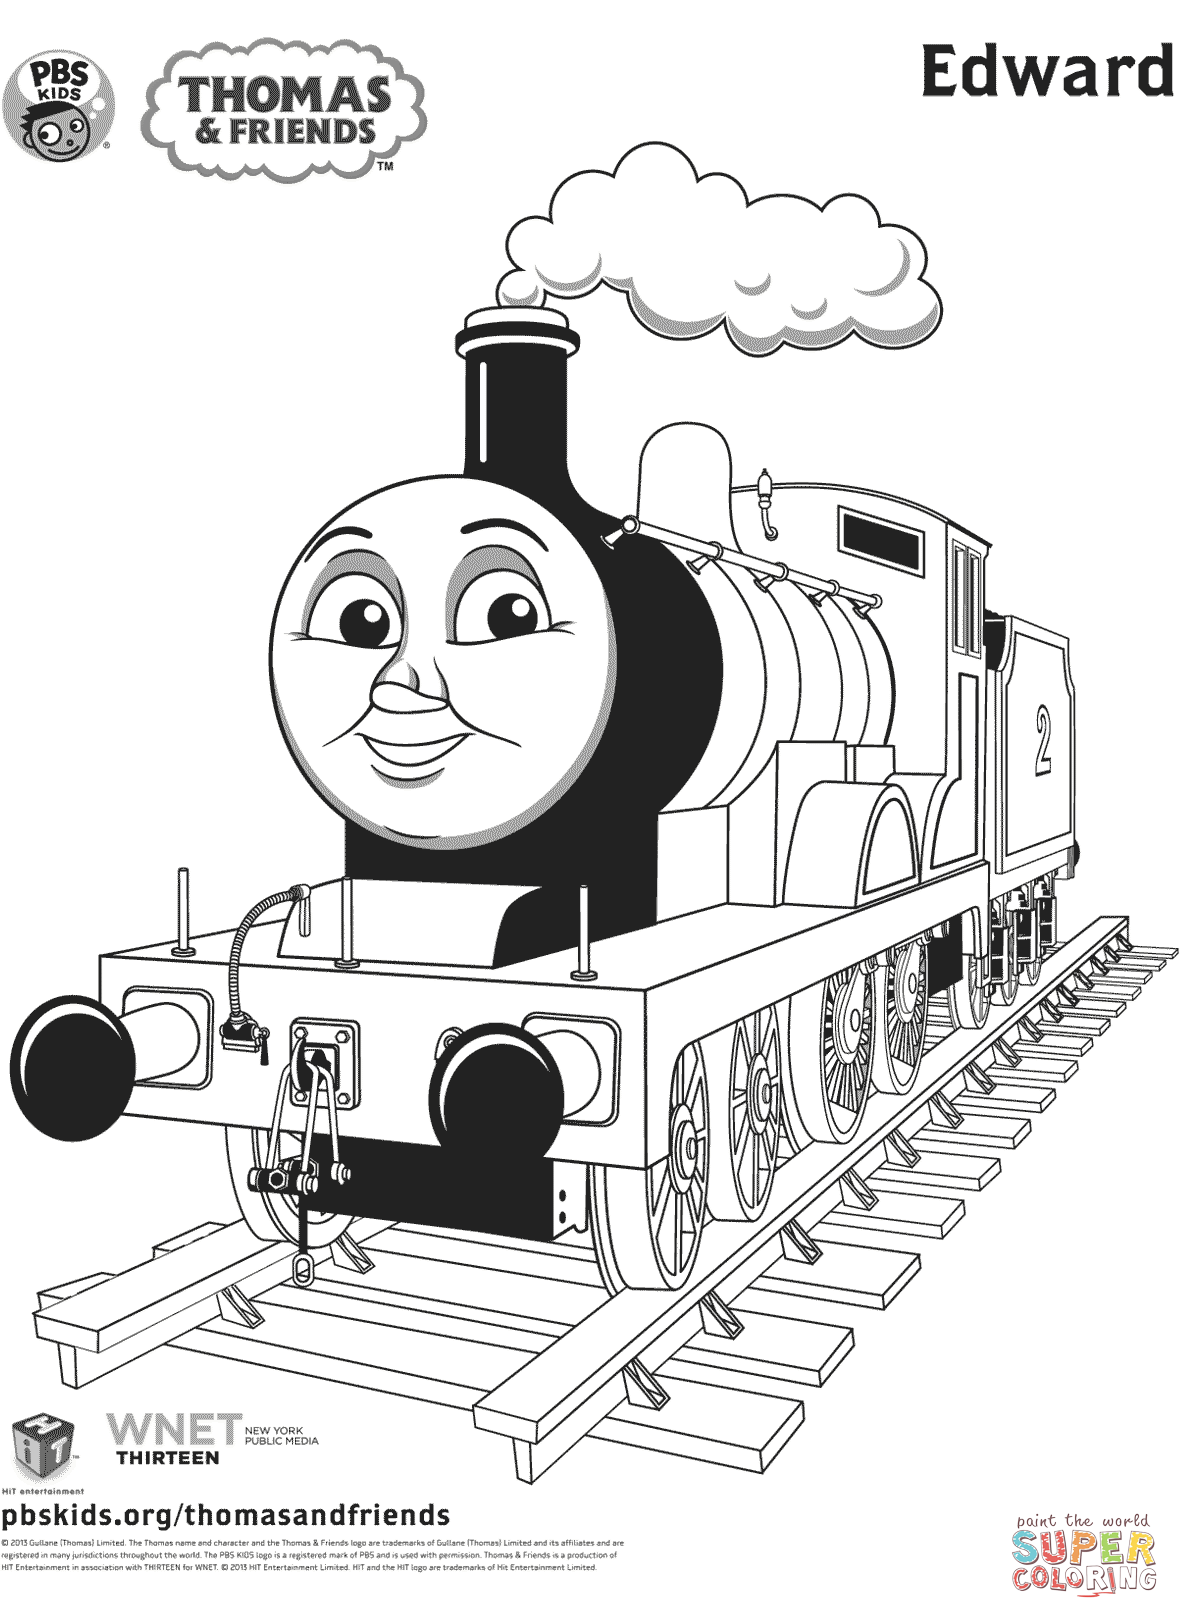 thomas and friends coloring thomas and friends for children thomas and friends kids coloring friends thomas and